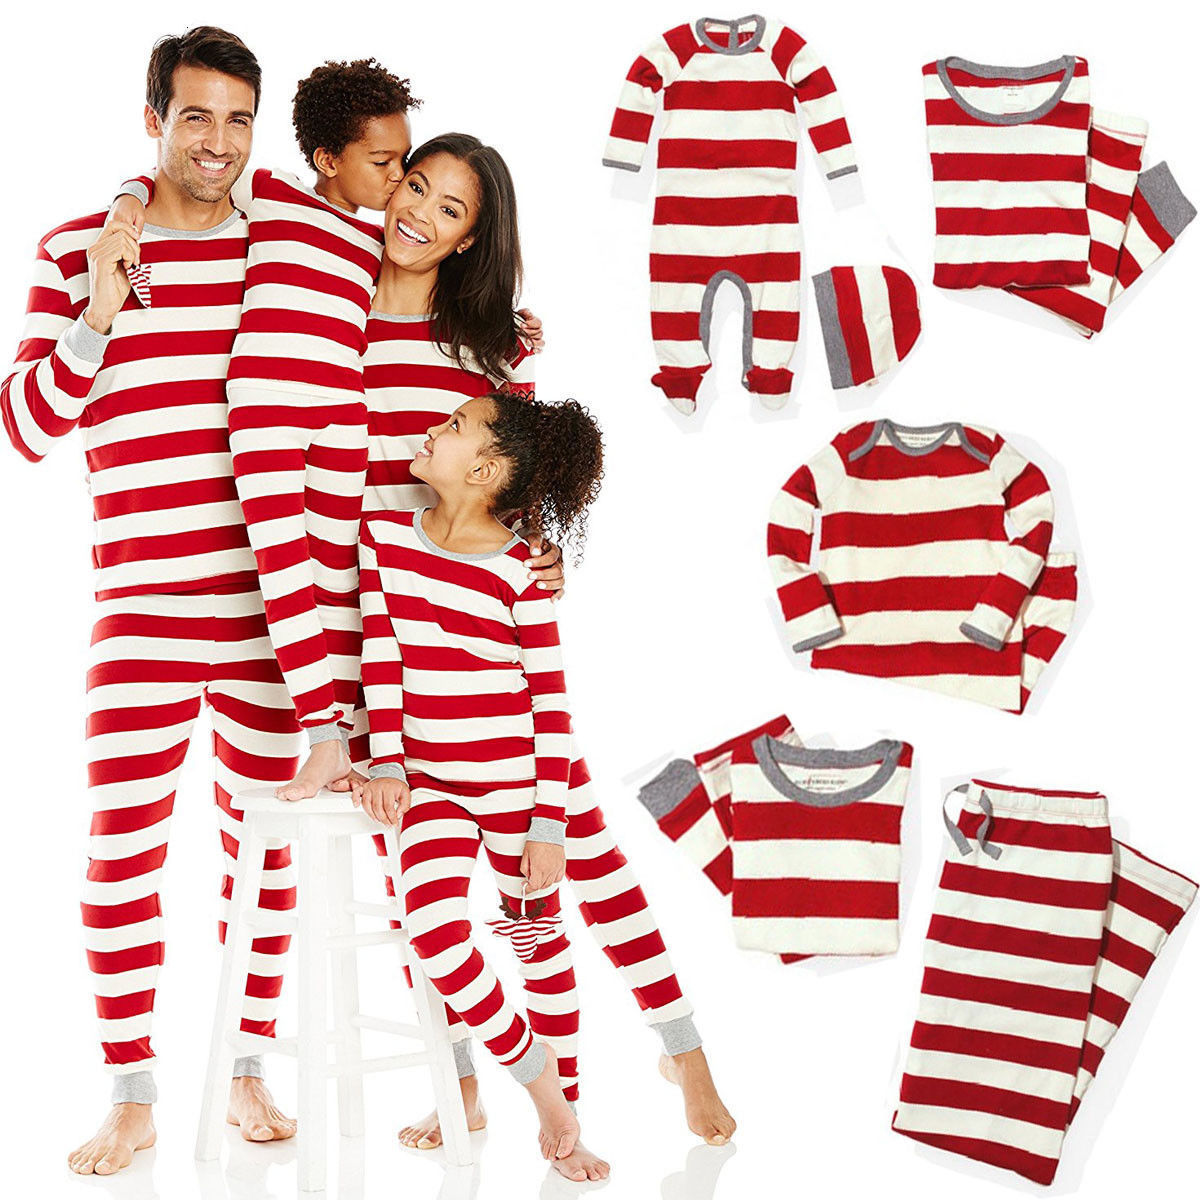 Striped Family Matching Outfits Set Christmas Family Pajamas Set Adult Kid Sleepwear Nightwear Photography Clothing